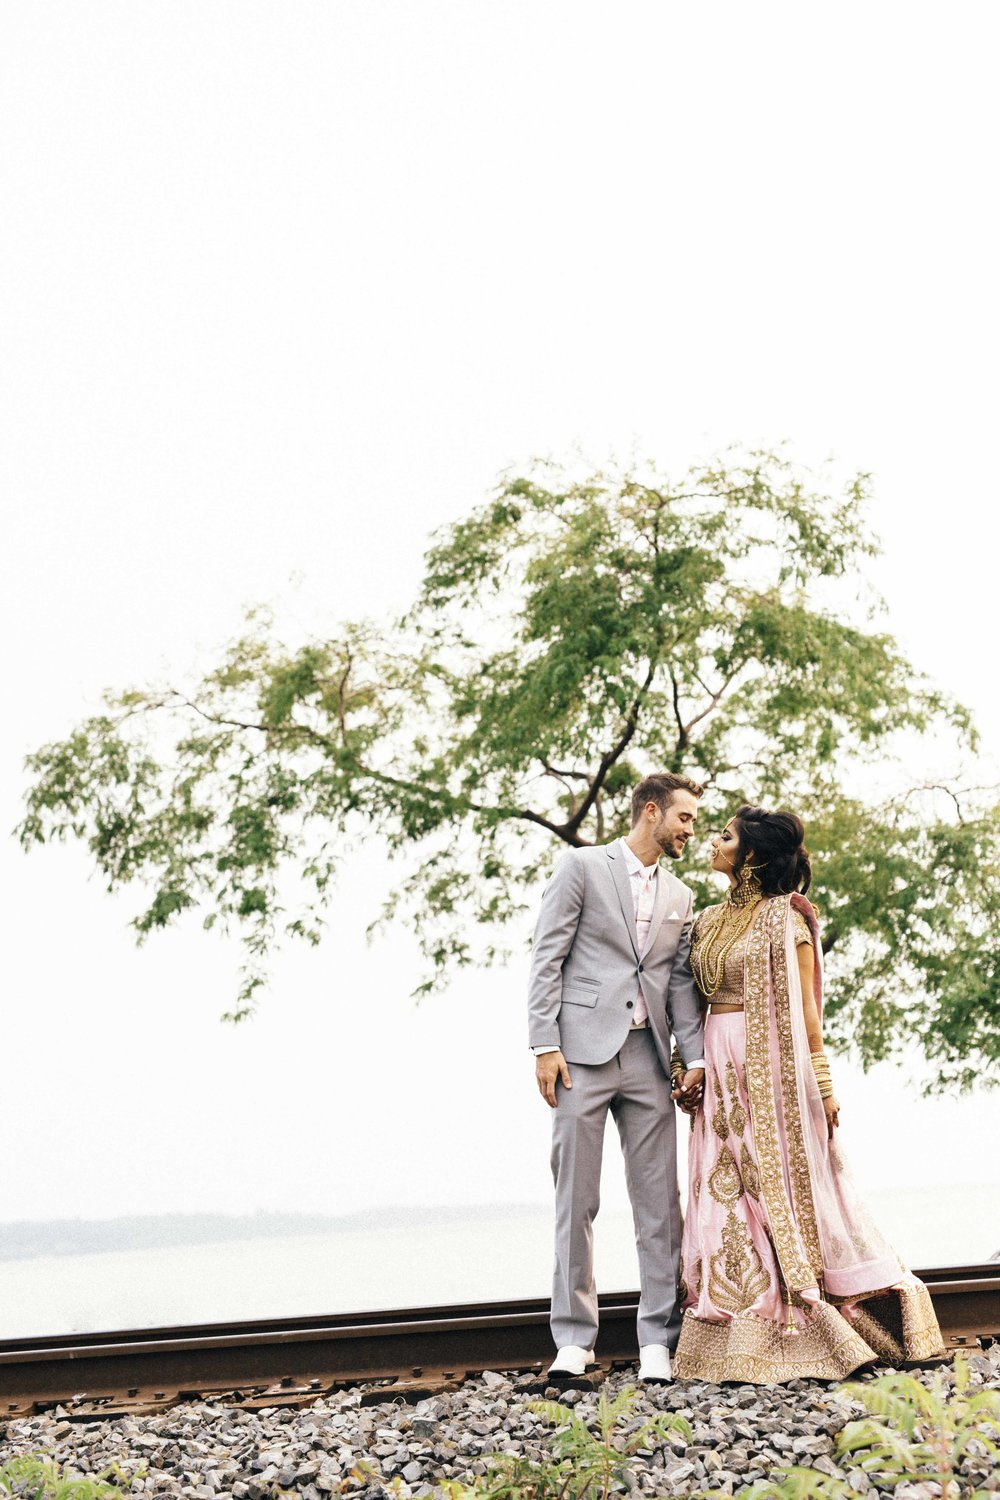 wedding vancouver bc photography videography.jpg